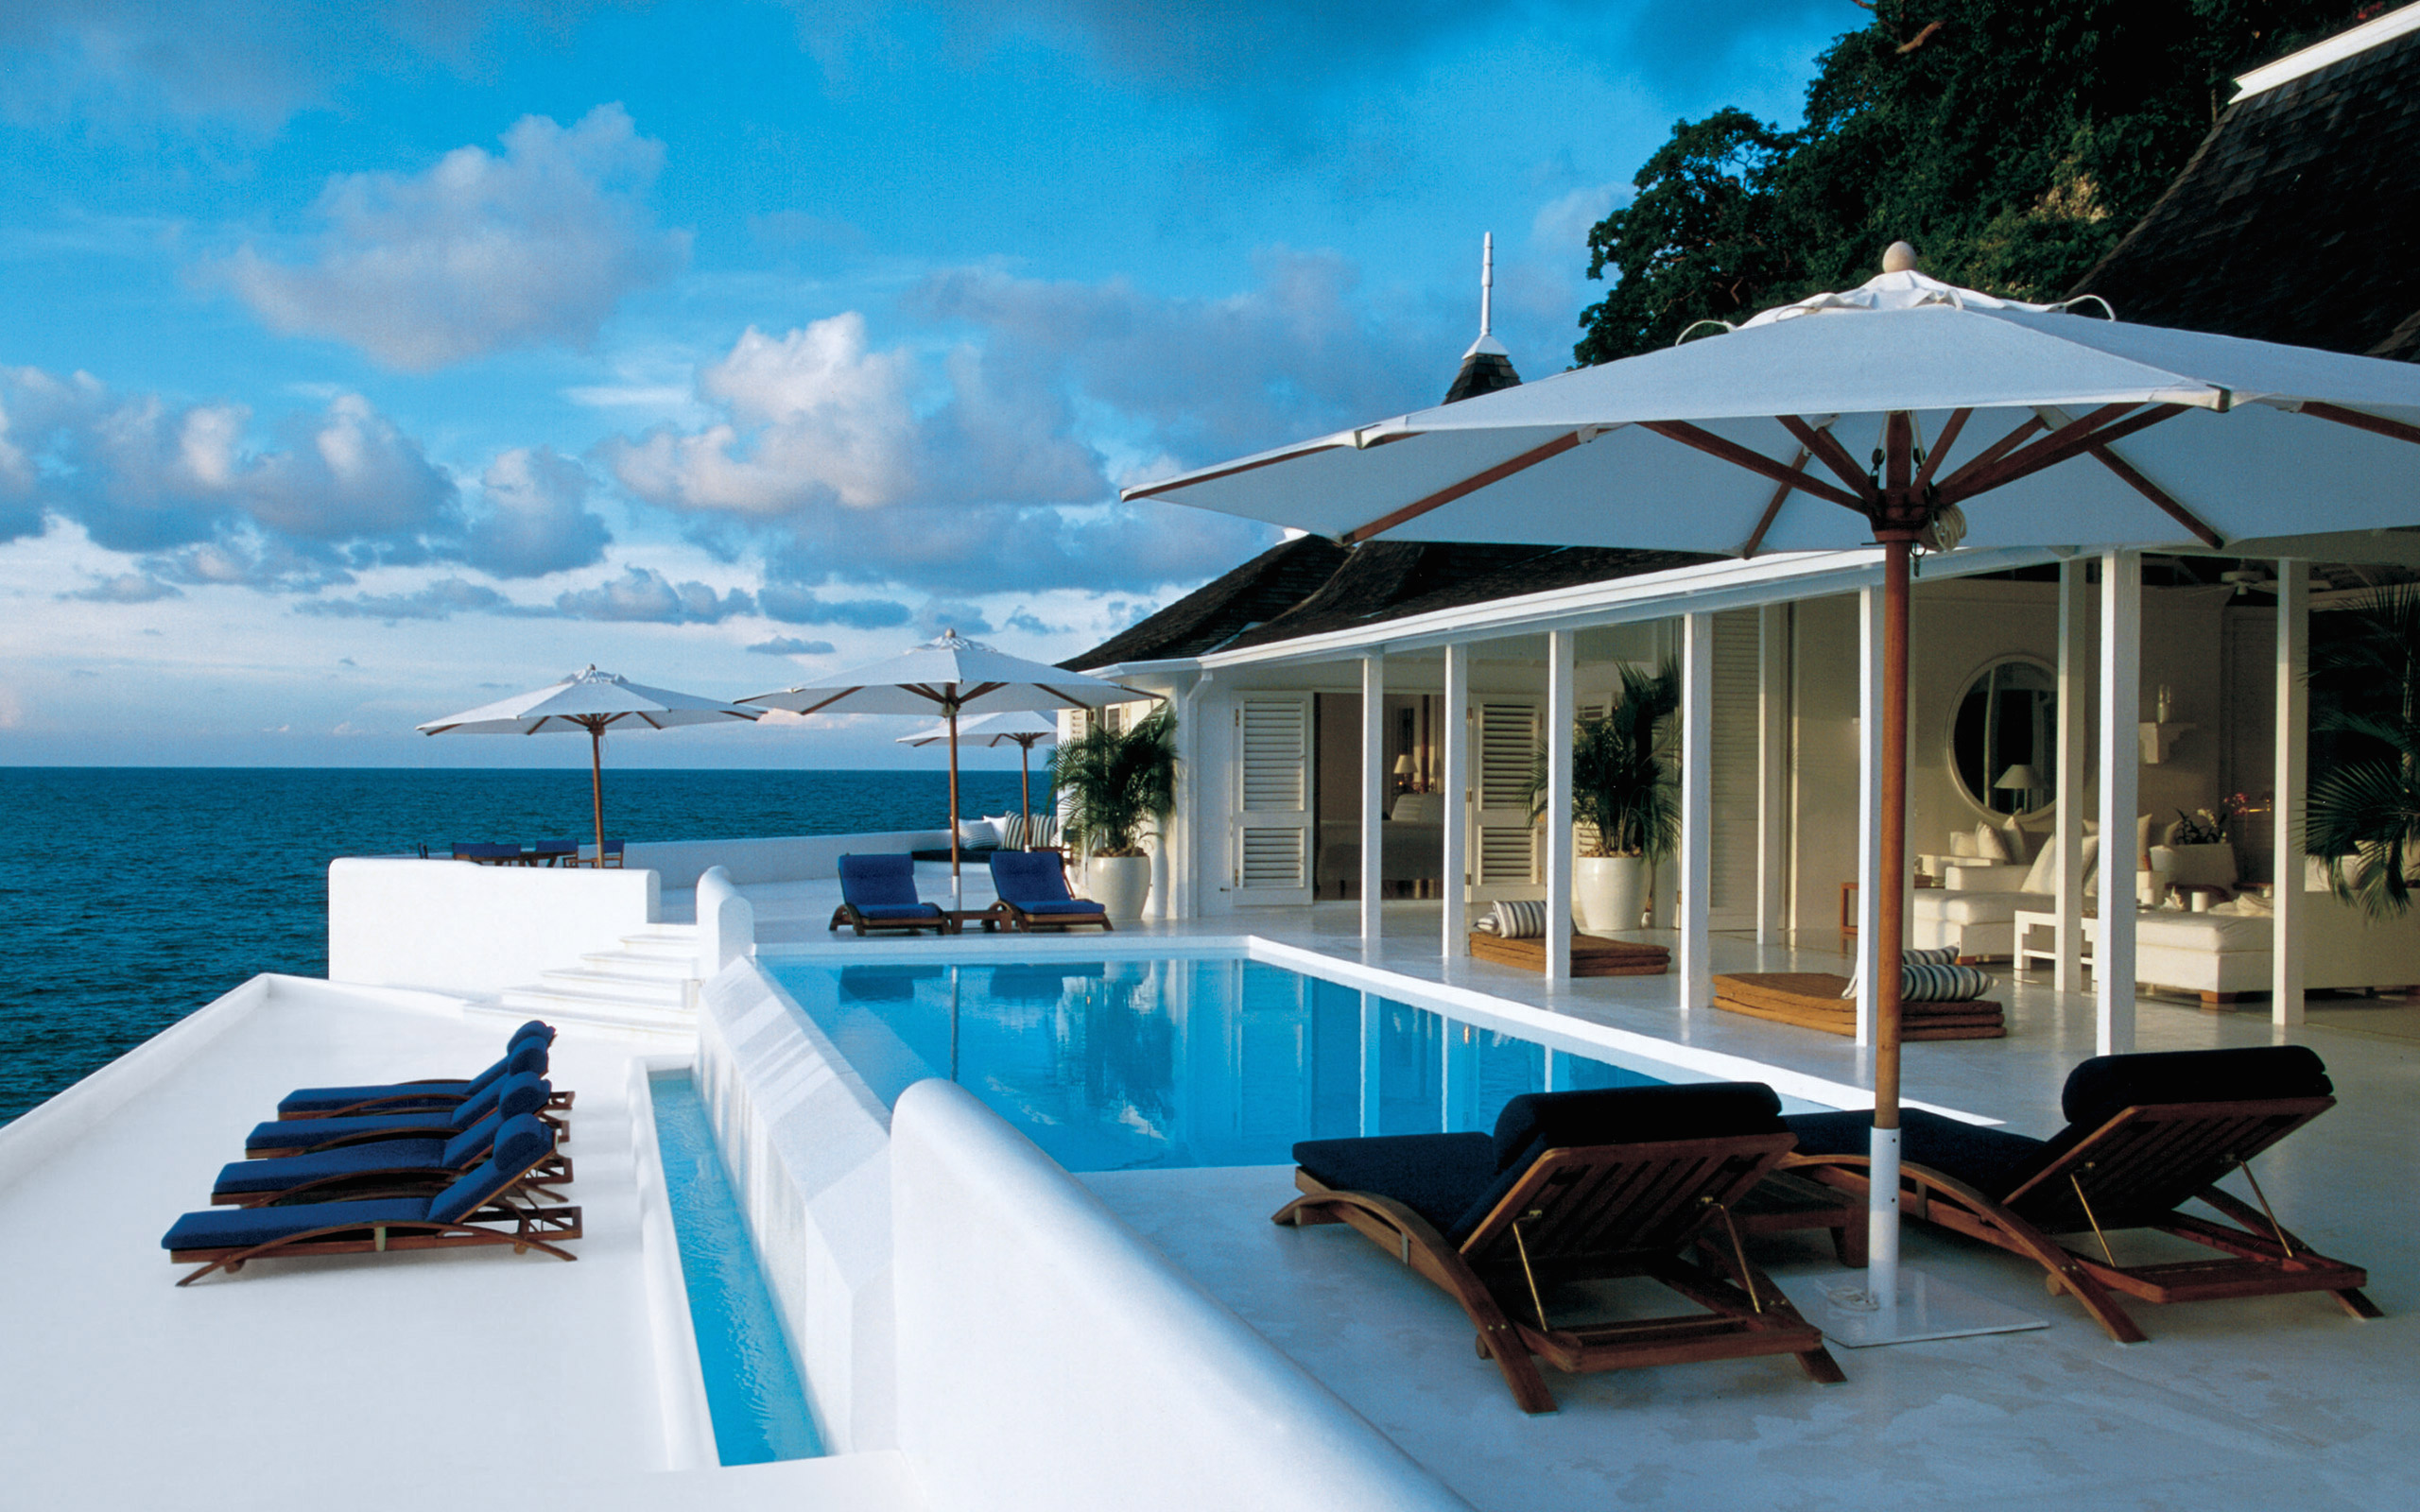 The view from White Orchid, Ralph Lauren's oceanside cottage in Round Hill, Jamaica